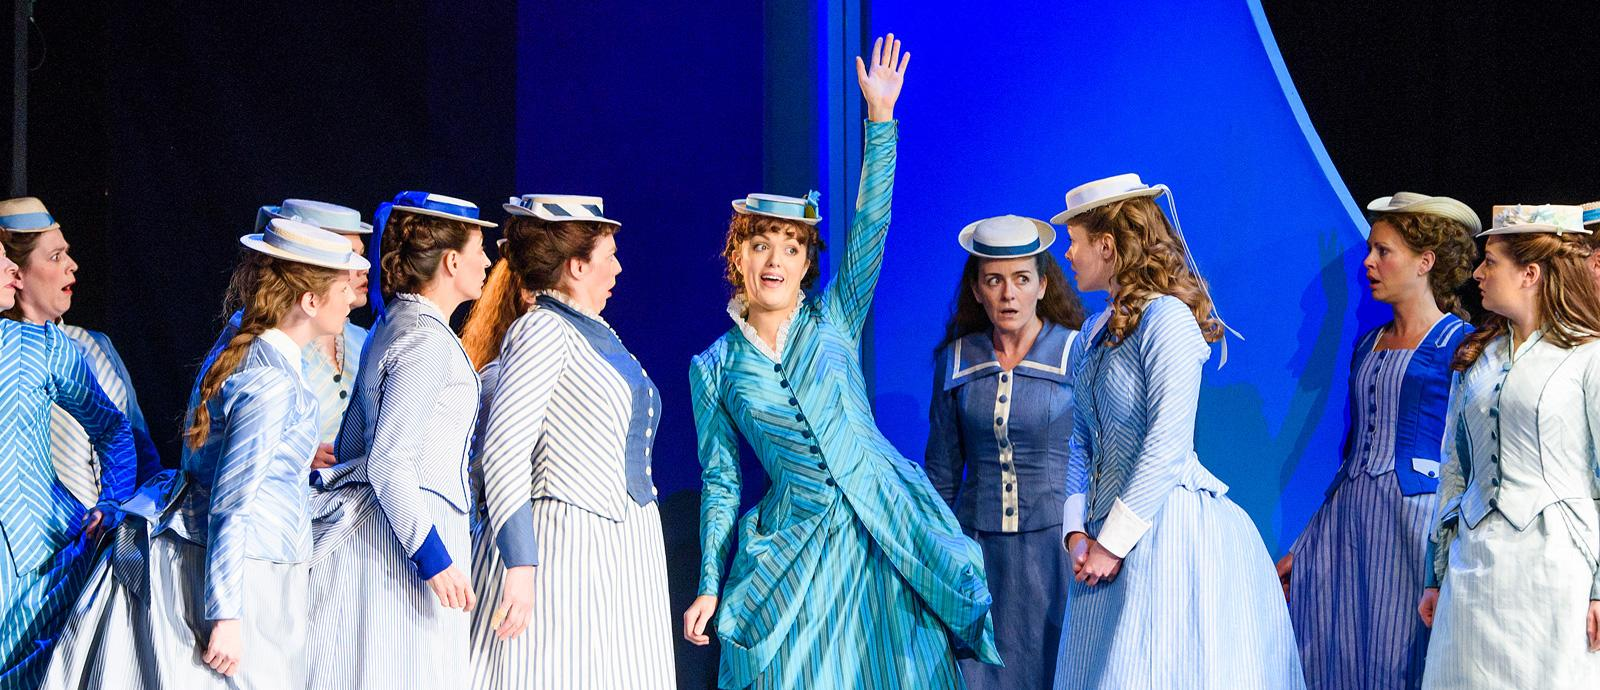 ENO's The Pirates of Penzance - Claudia Boyle as Mabel and Company. Photo by Tristram Kenton